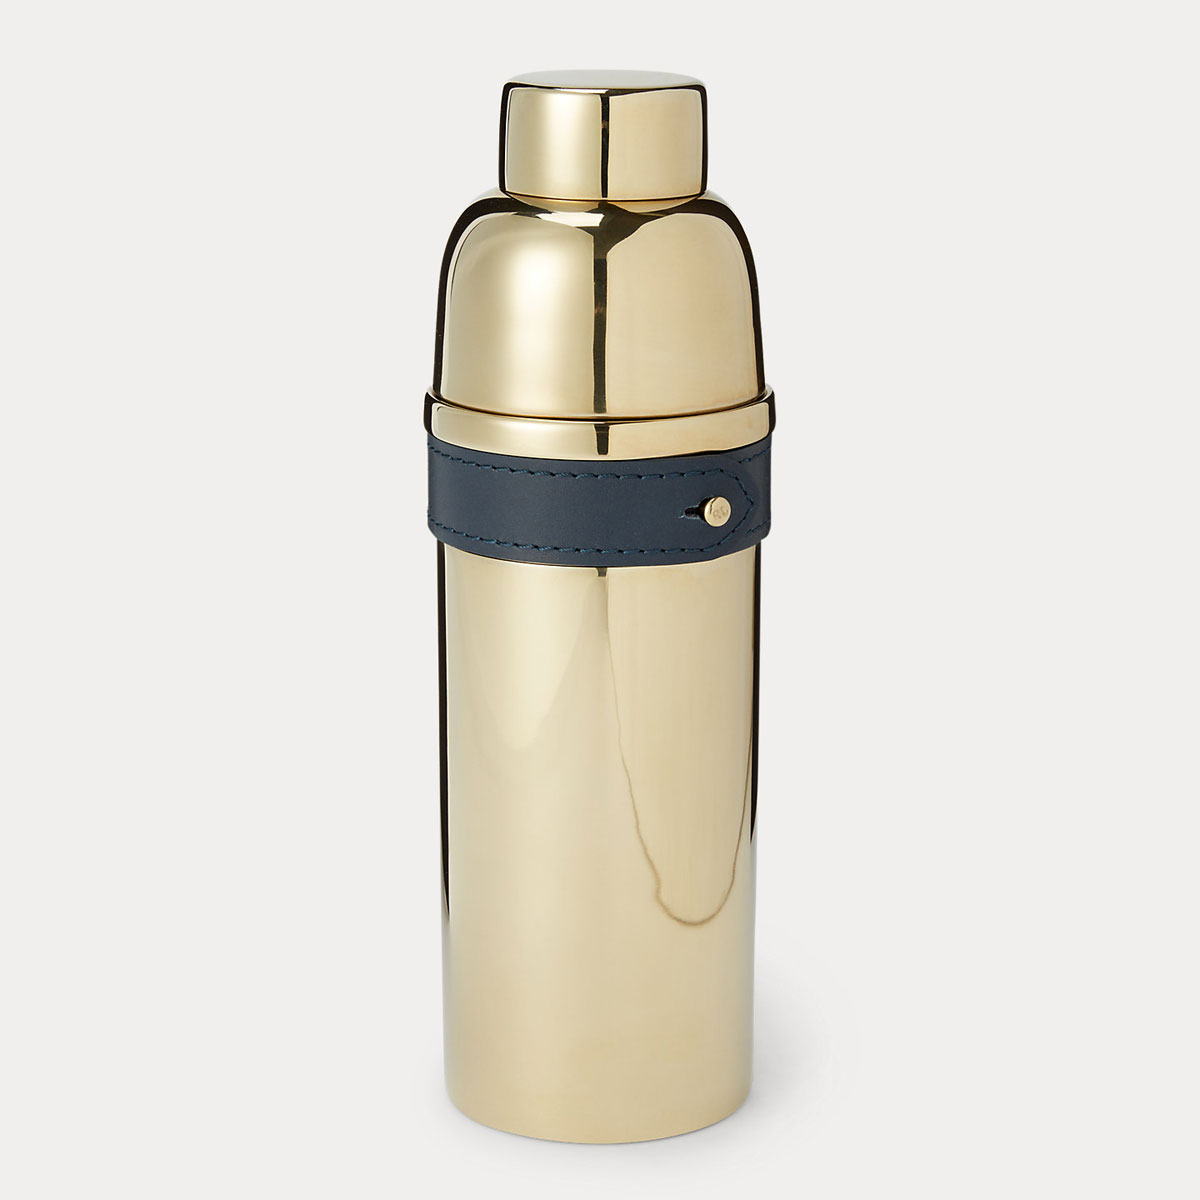 Ralph Lauren Wyatt Cocktail Shaker, Navy and Gold